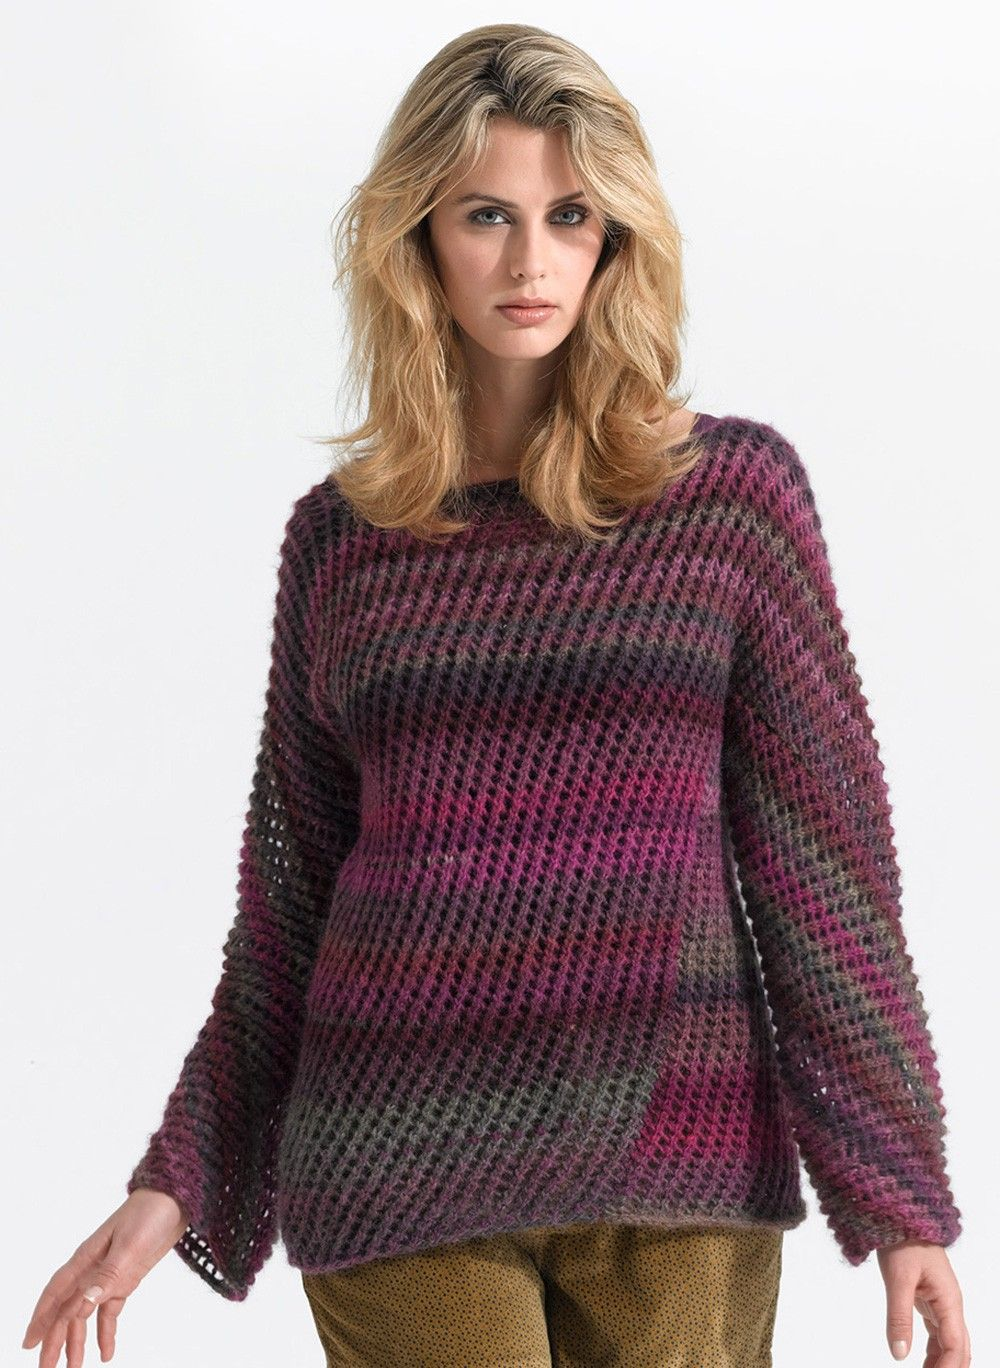 Diagonal Lace Pullover Pattern (Knit) | knitting and crochet ...